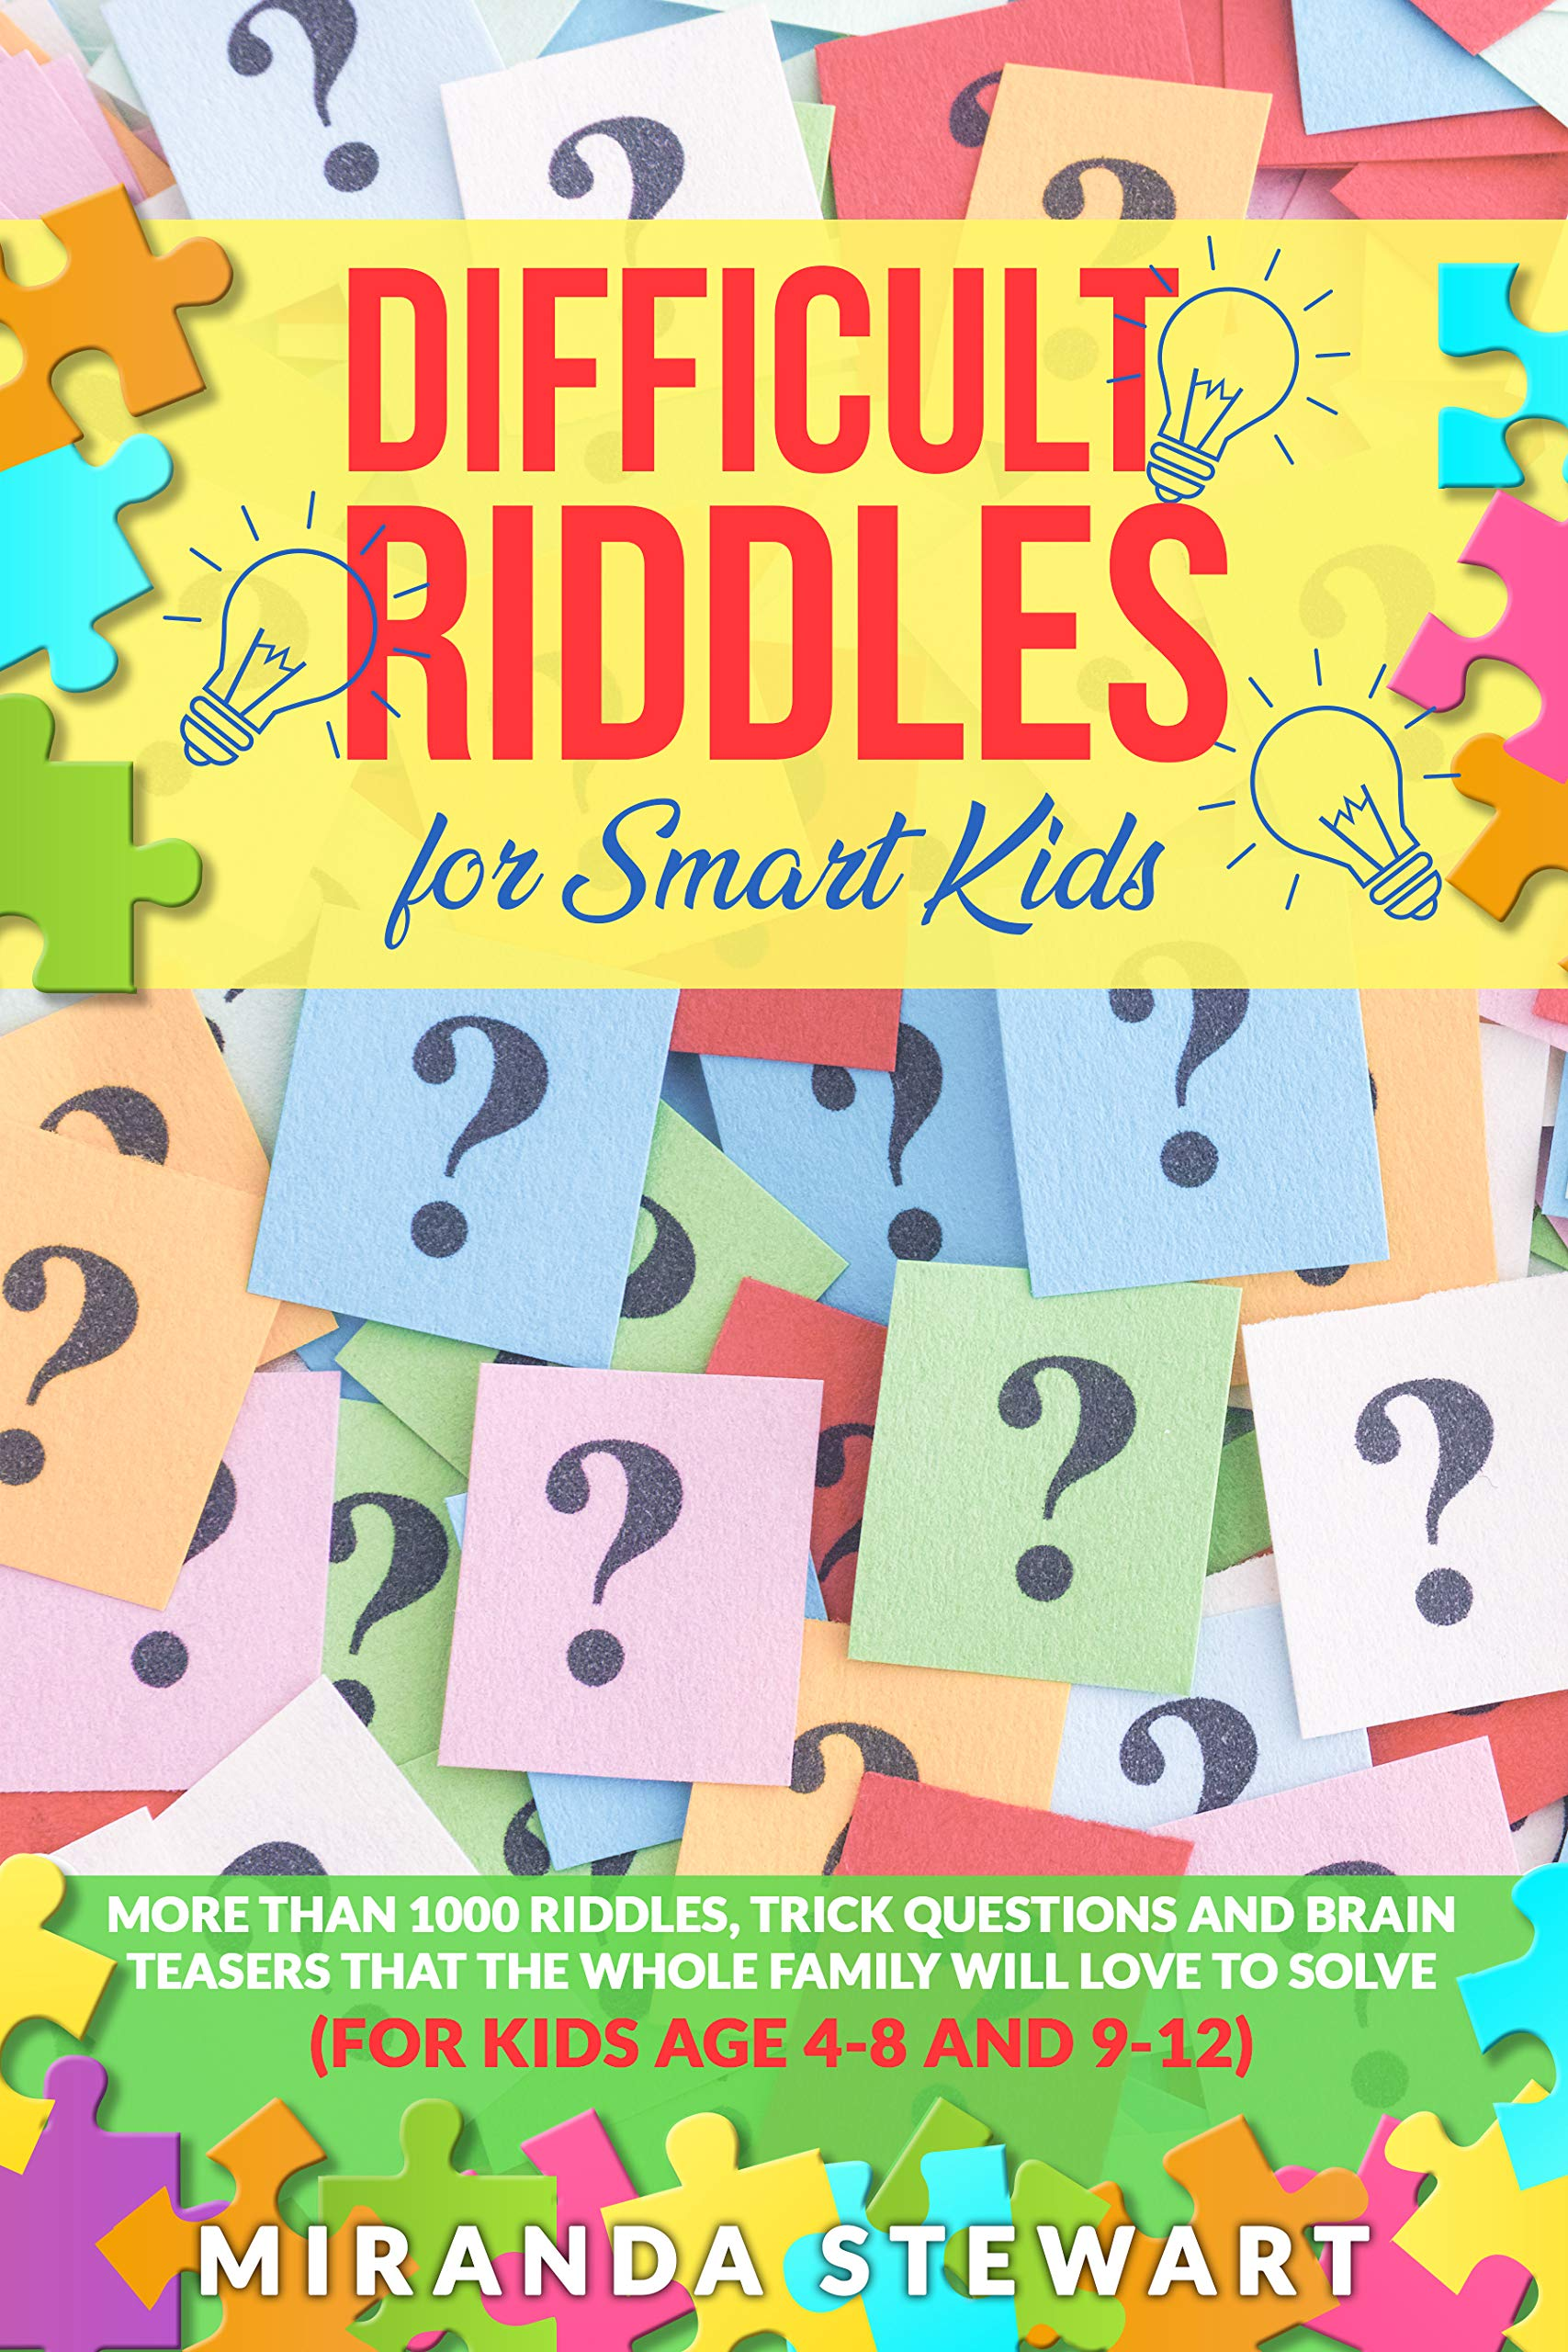 Difficult Riddles For Smart Kids: More Than 1000 Riddles, Trick Questions And Brain Teasers That The Whole Family Will Love To Solve (For Kids Age 4-8 And 9-12) (Riddles For Kids Book 2)